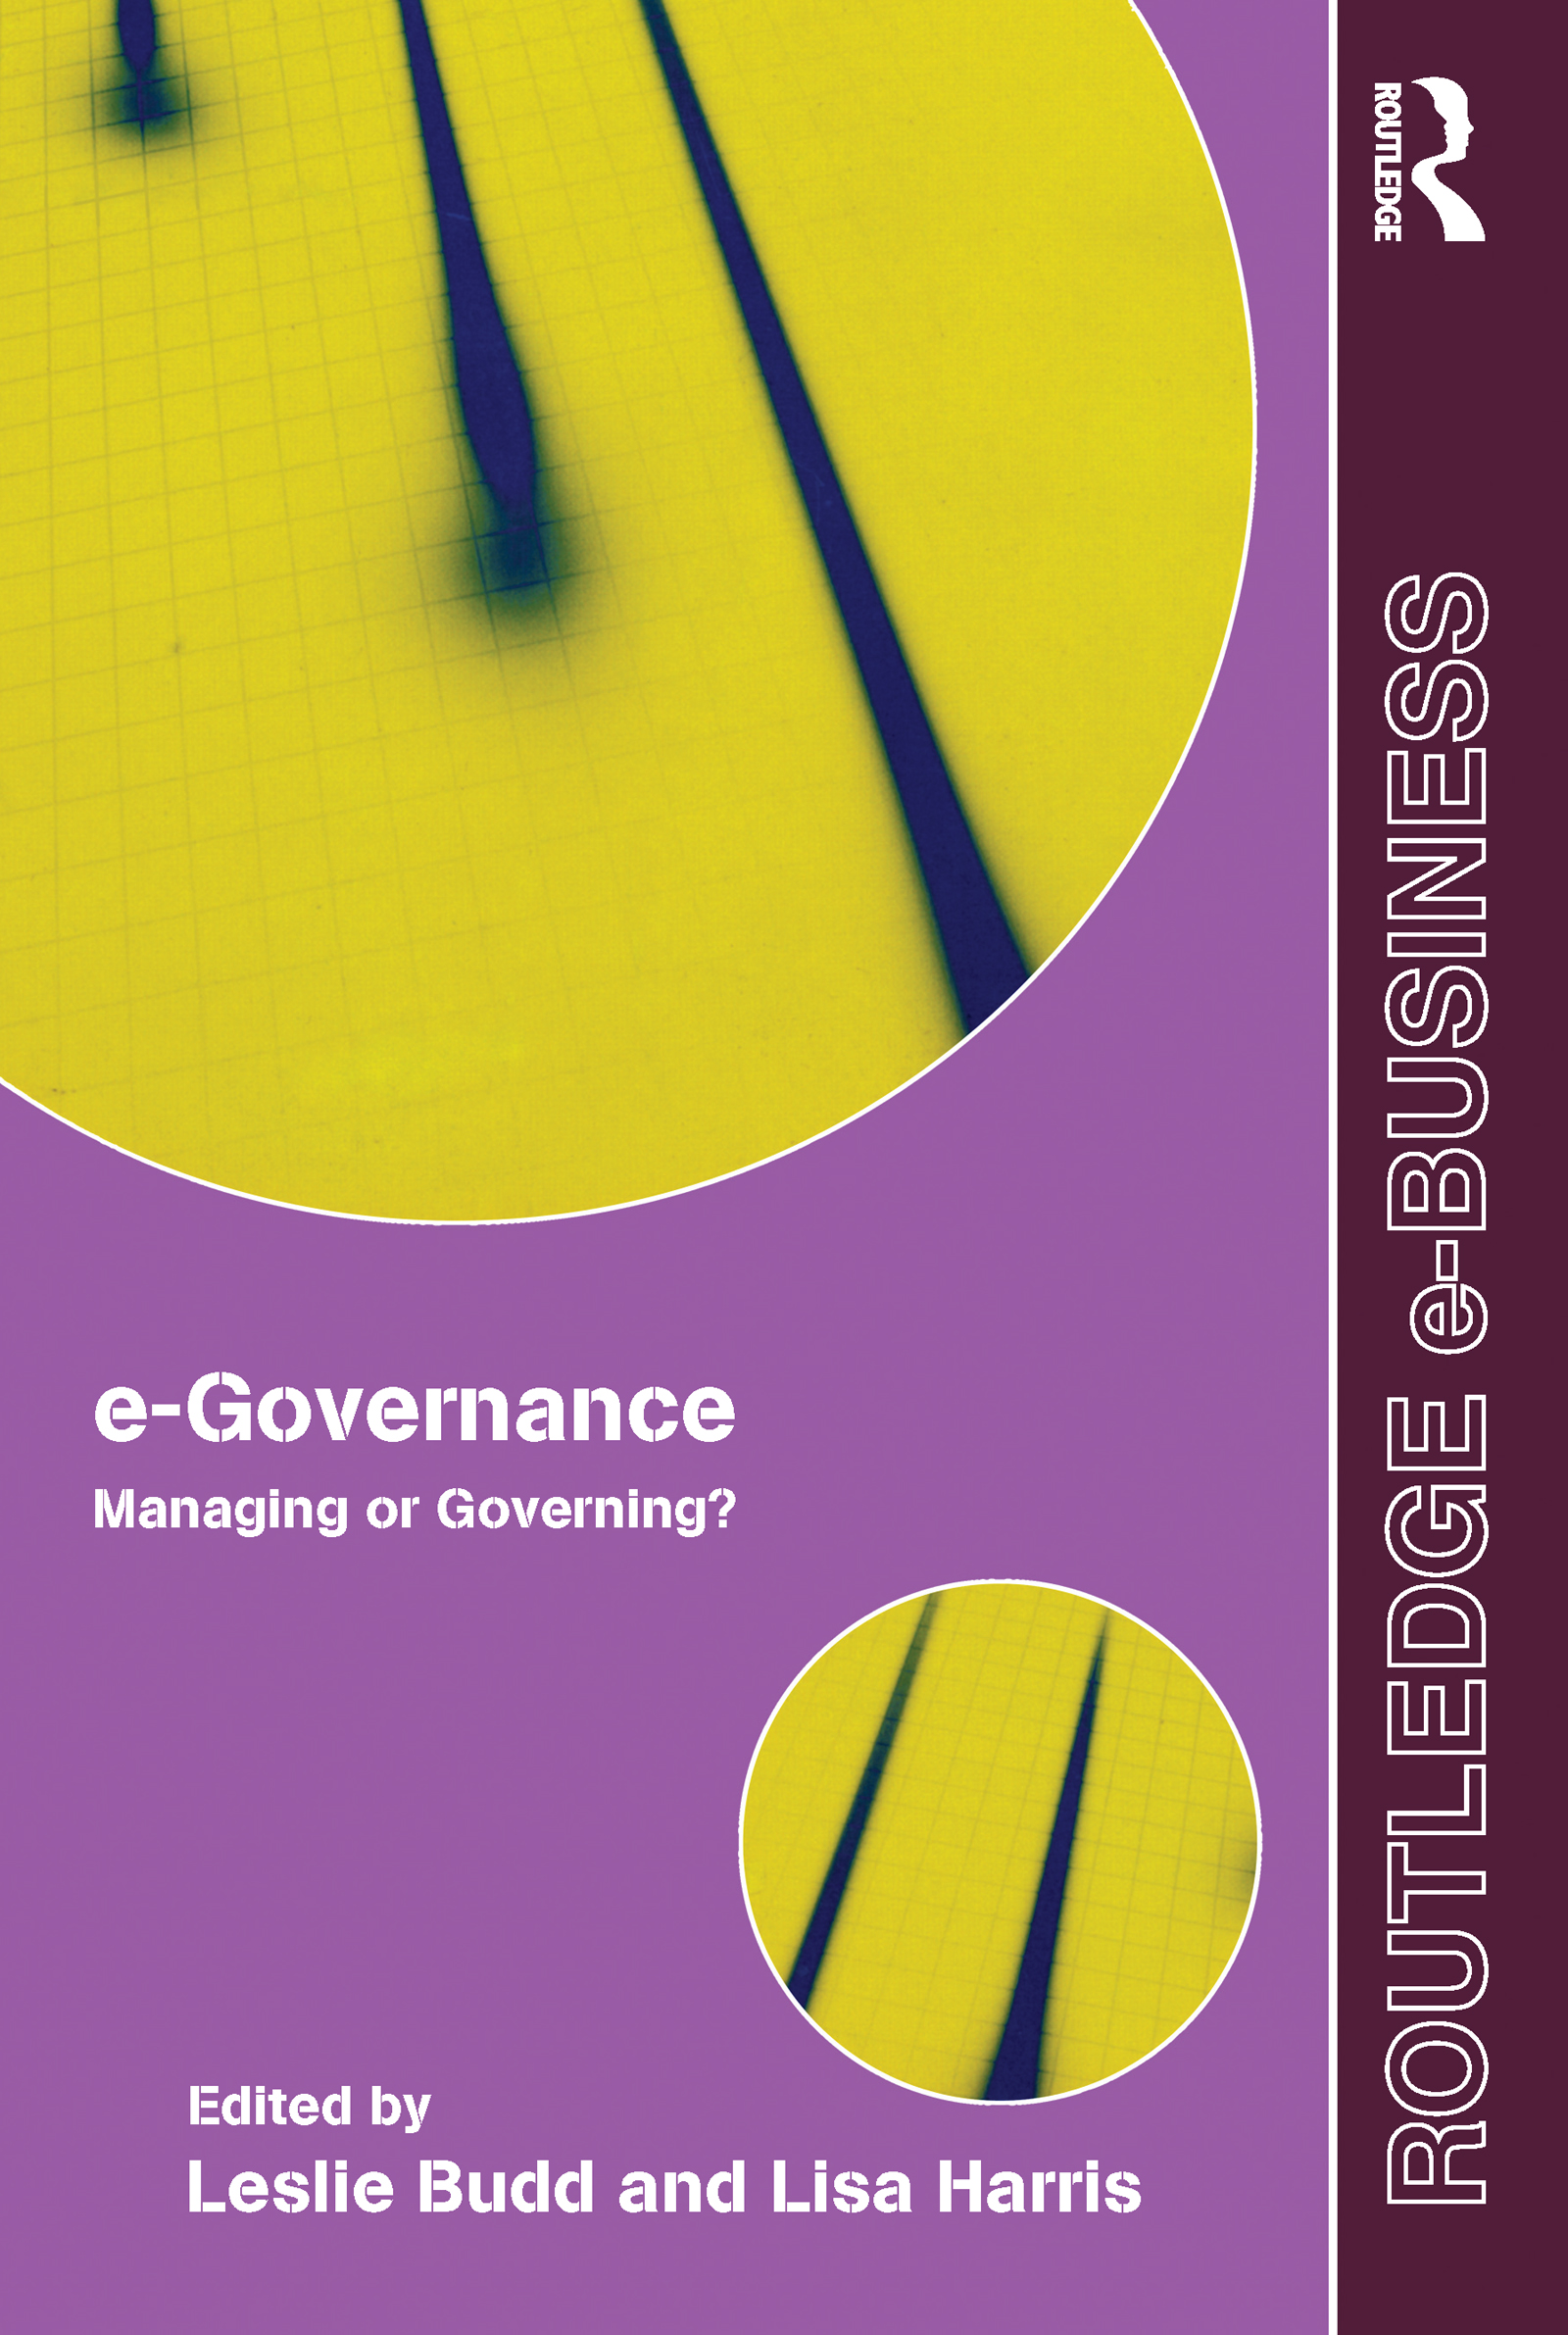 e-Governance: Managing or Governing? book cover